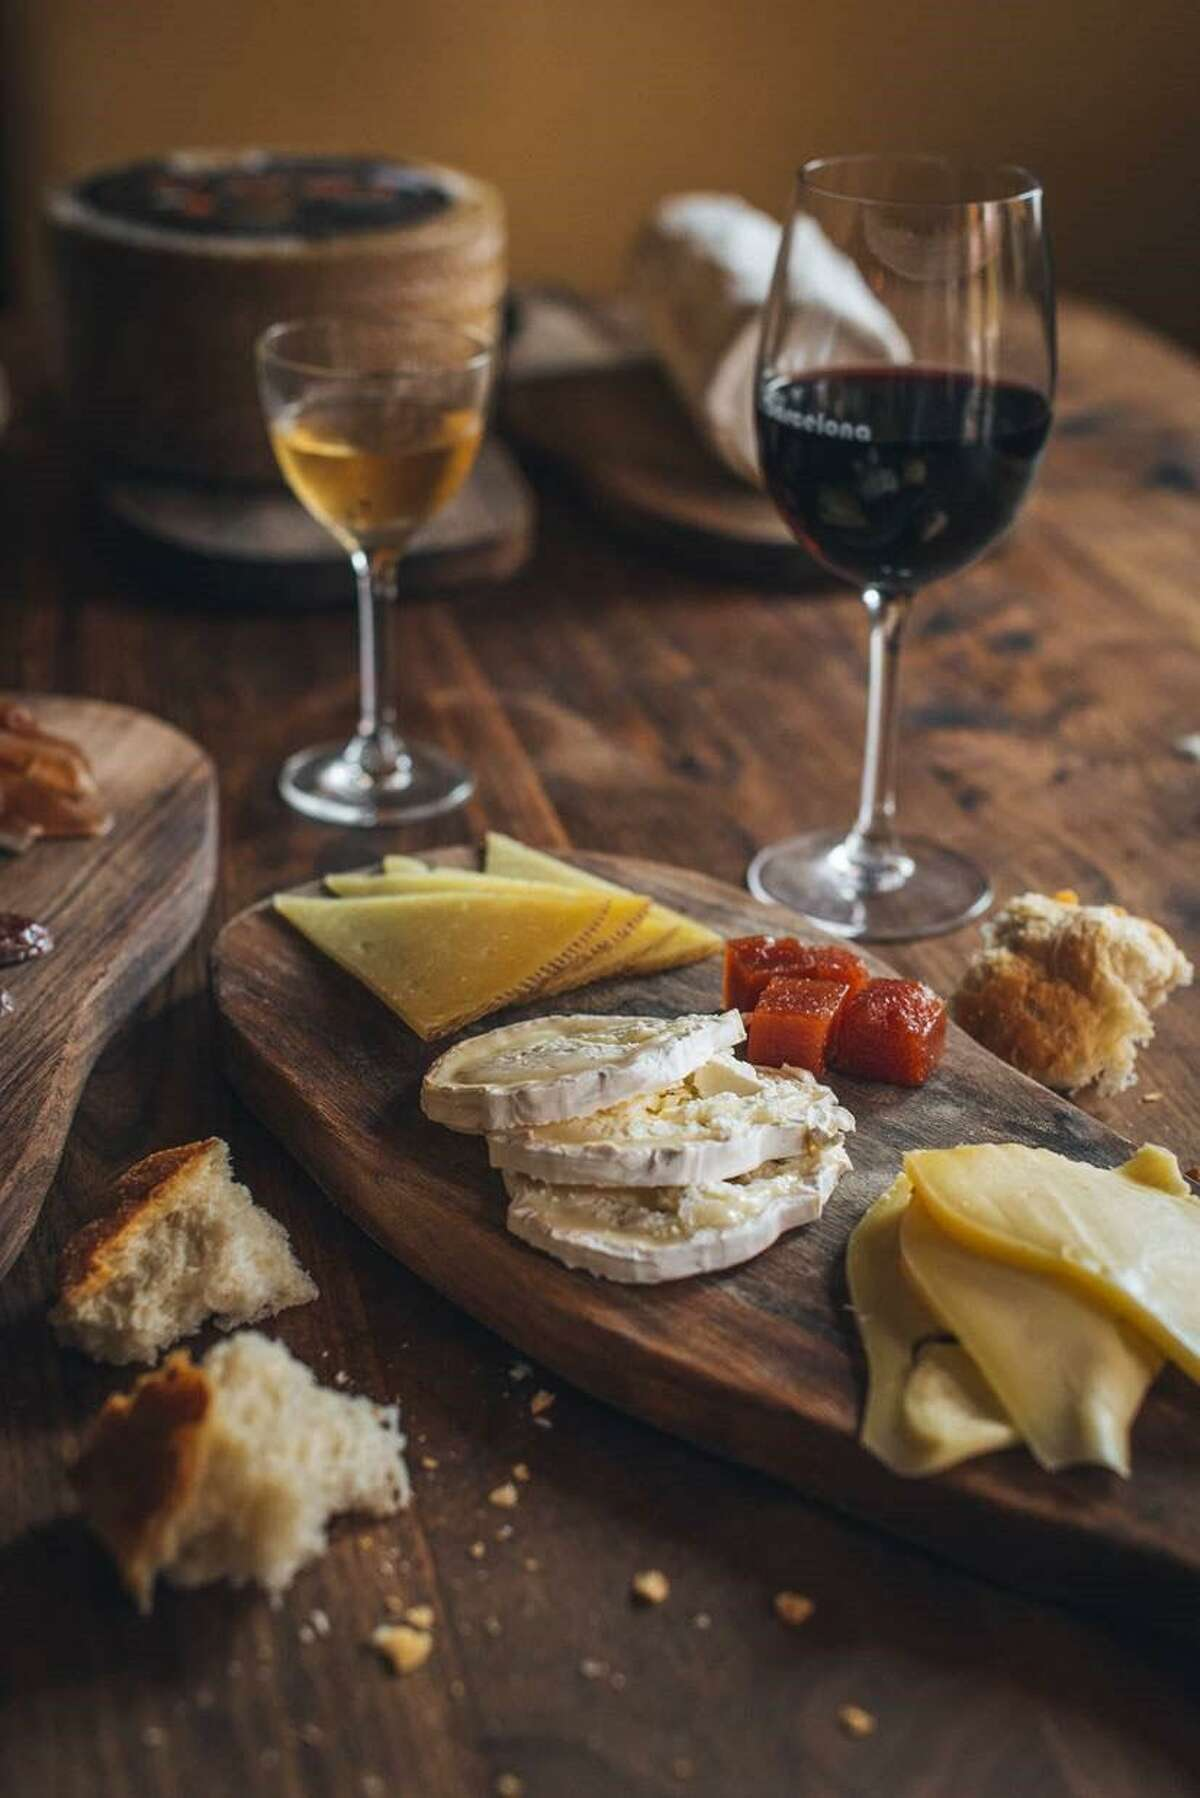 A section of cheeses along with a glass of sherry and a glass of red wine at Barcelona in Fairfield.